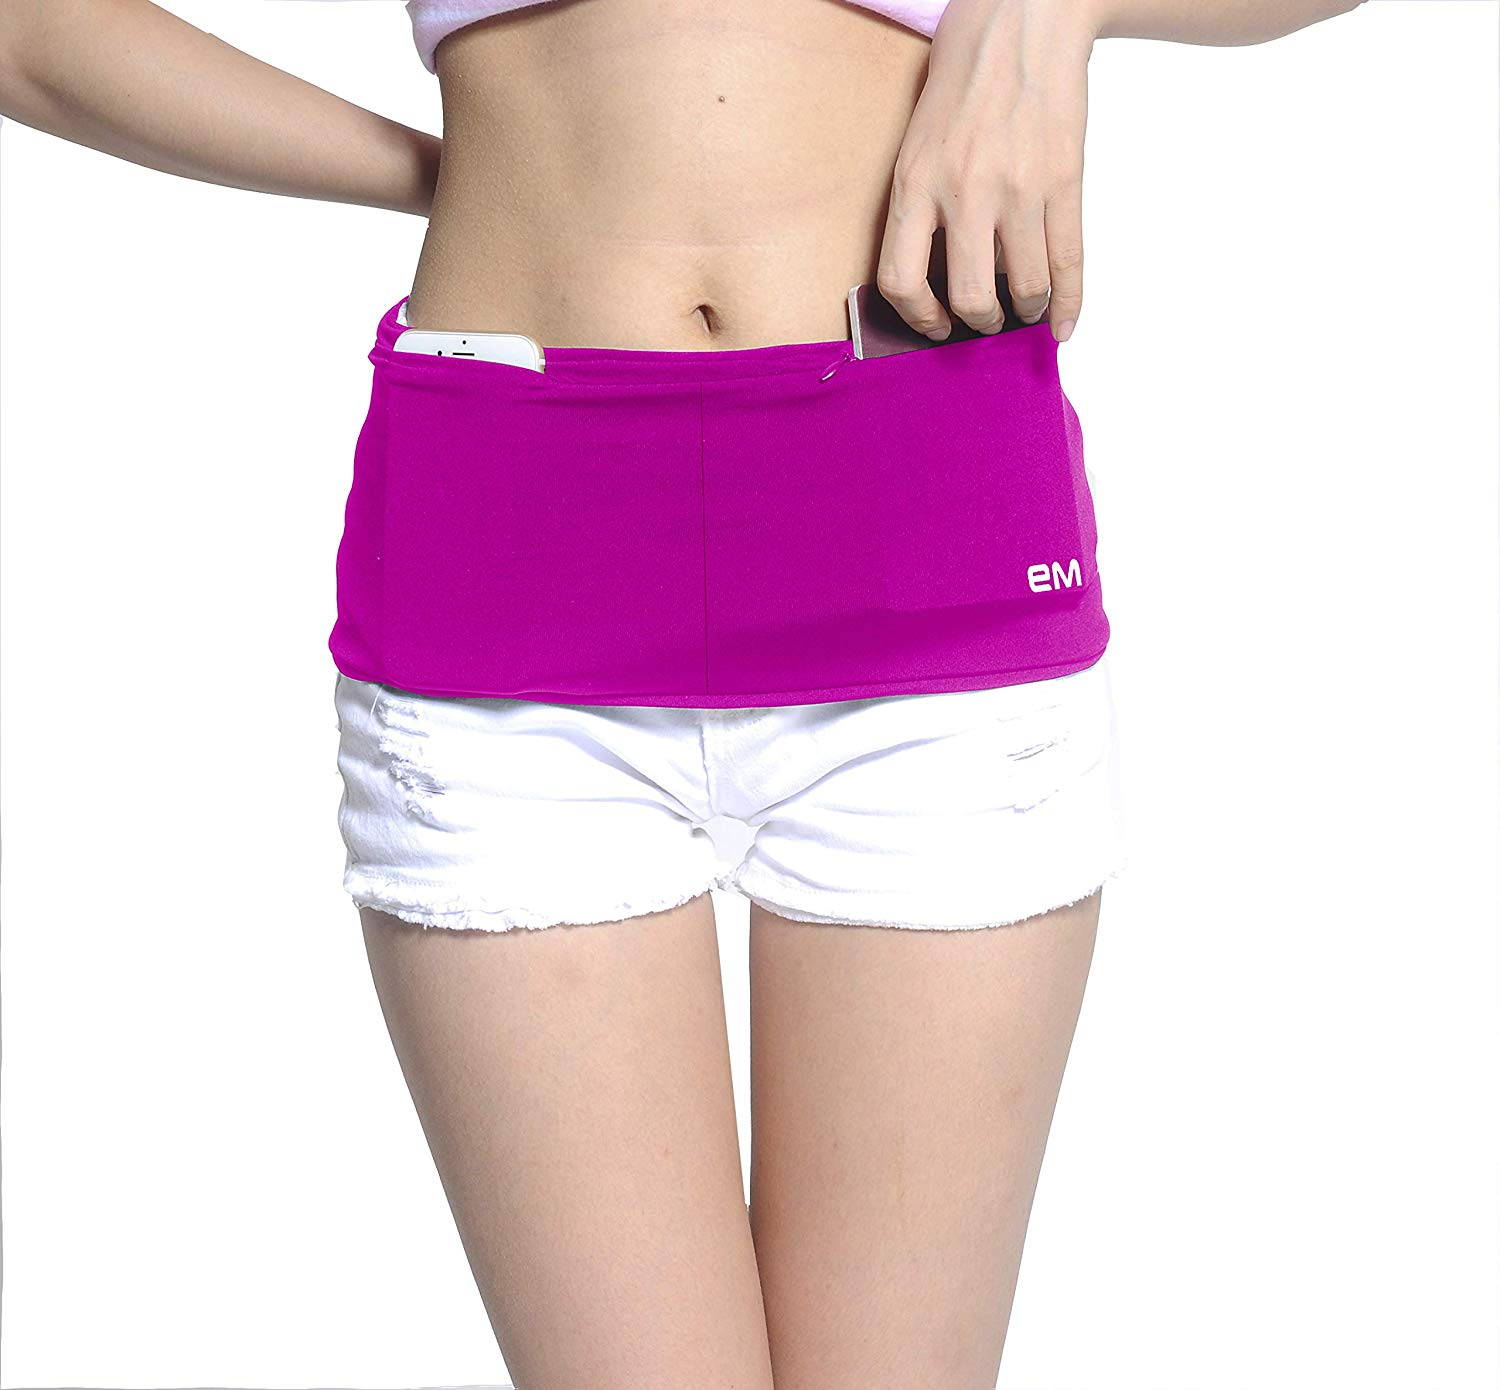 EAZYMATE Fashion Running Belt wearing